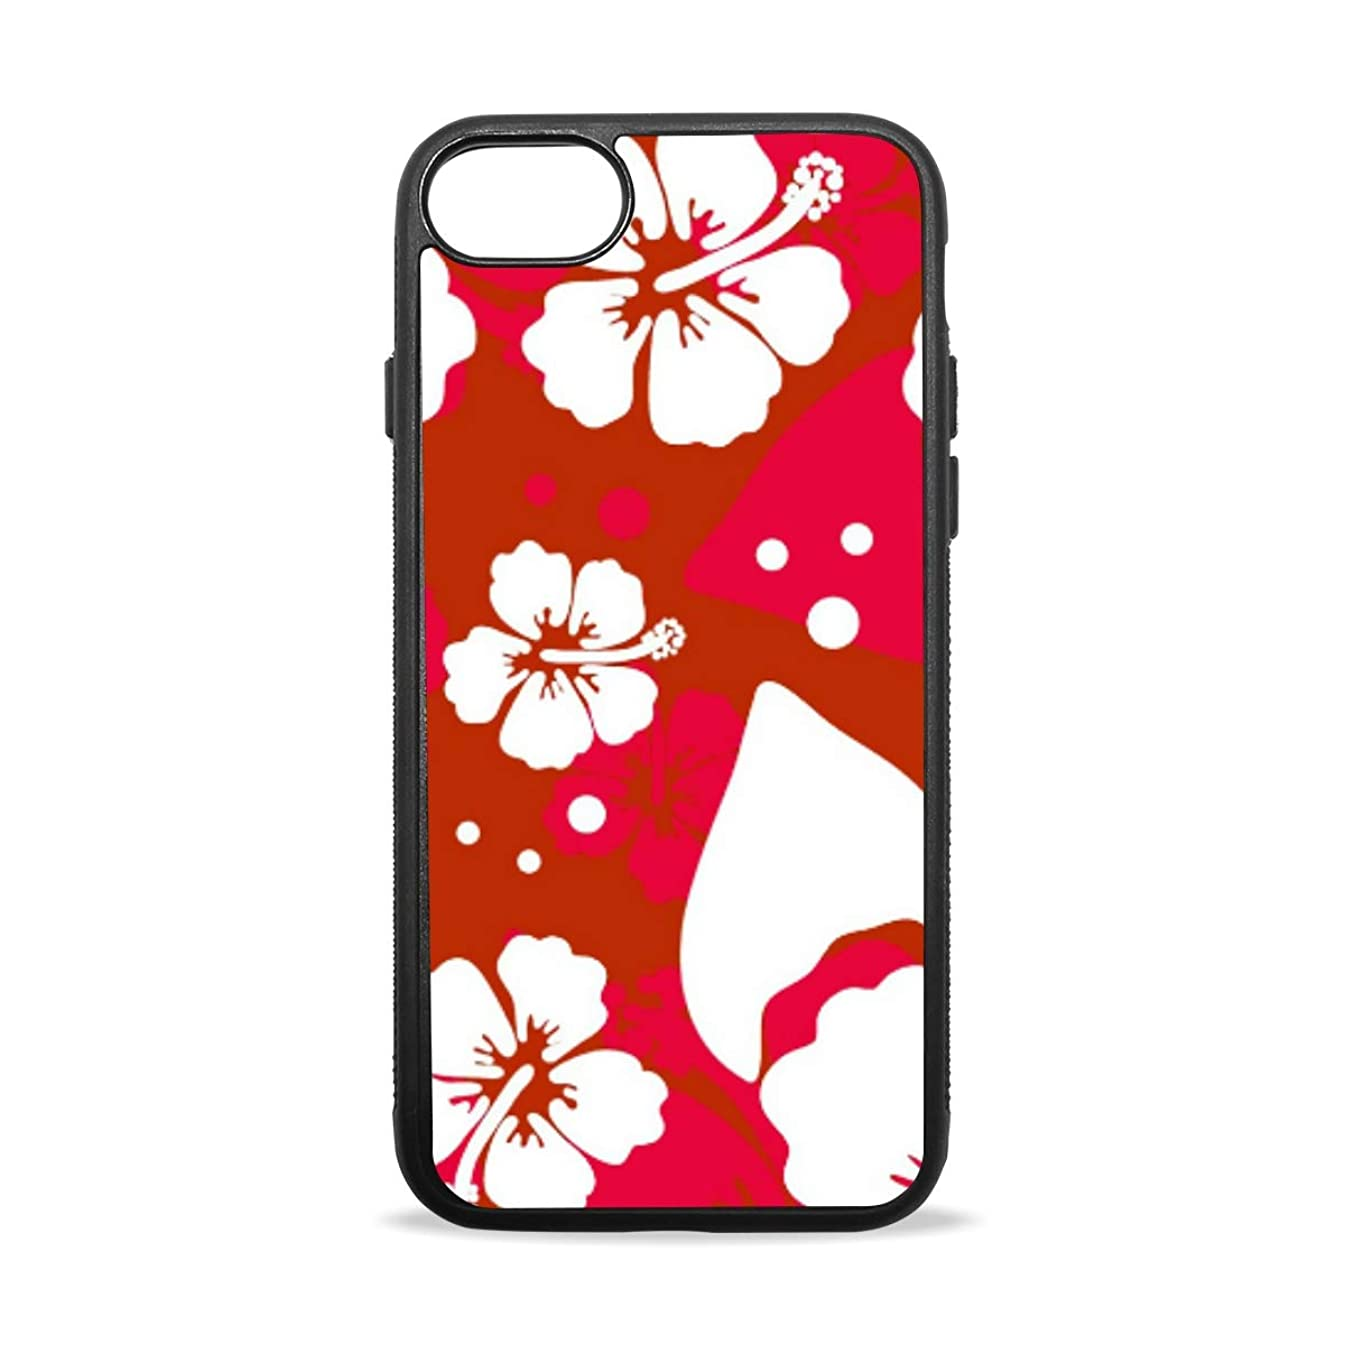 Apple Case Shockproof Slim TPU Protective Cover Hawaiian Red Flower Soft Rubber Silicone Cover Phone Case Compatible with iPhone 7/8 iPhone 7/8 Plus [4.7 inch/5.5 inch]